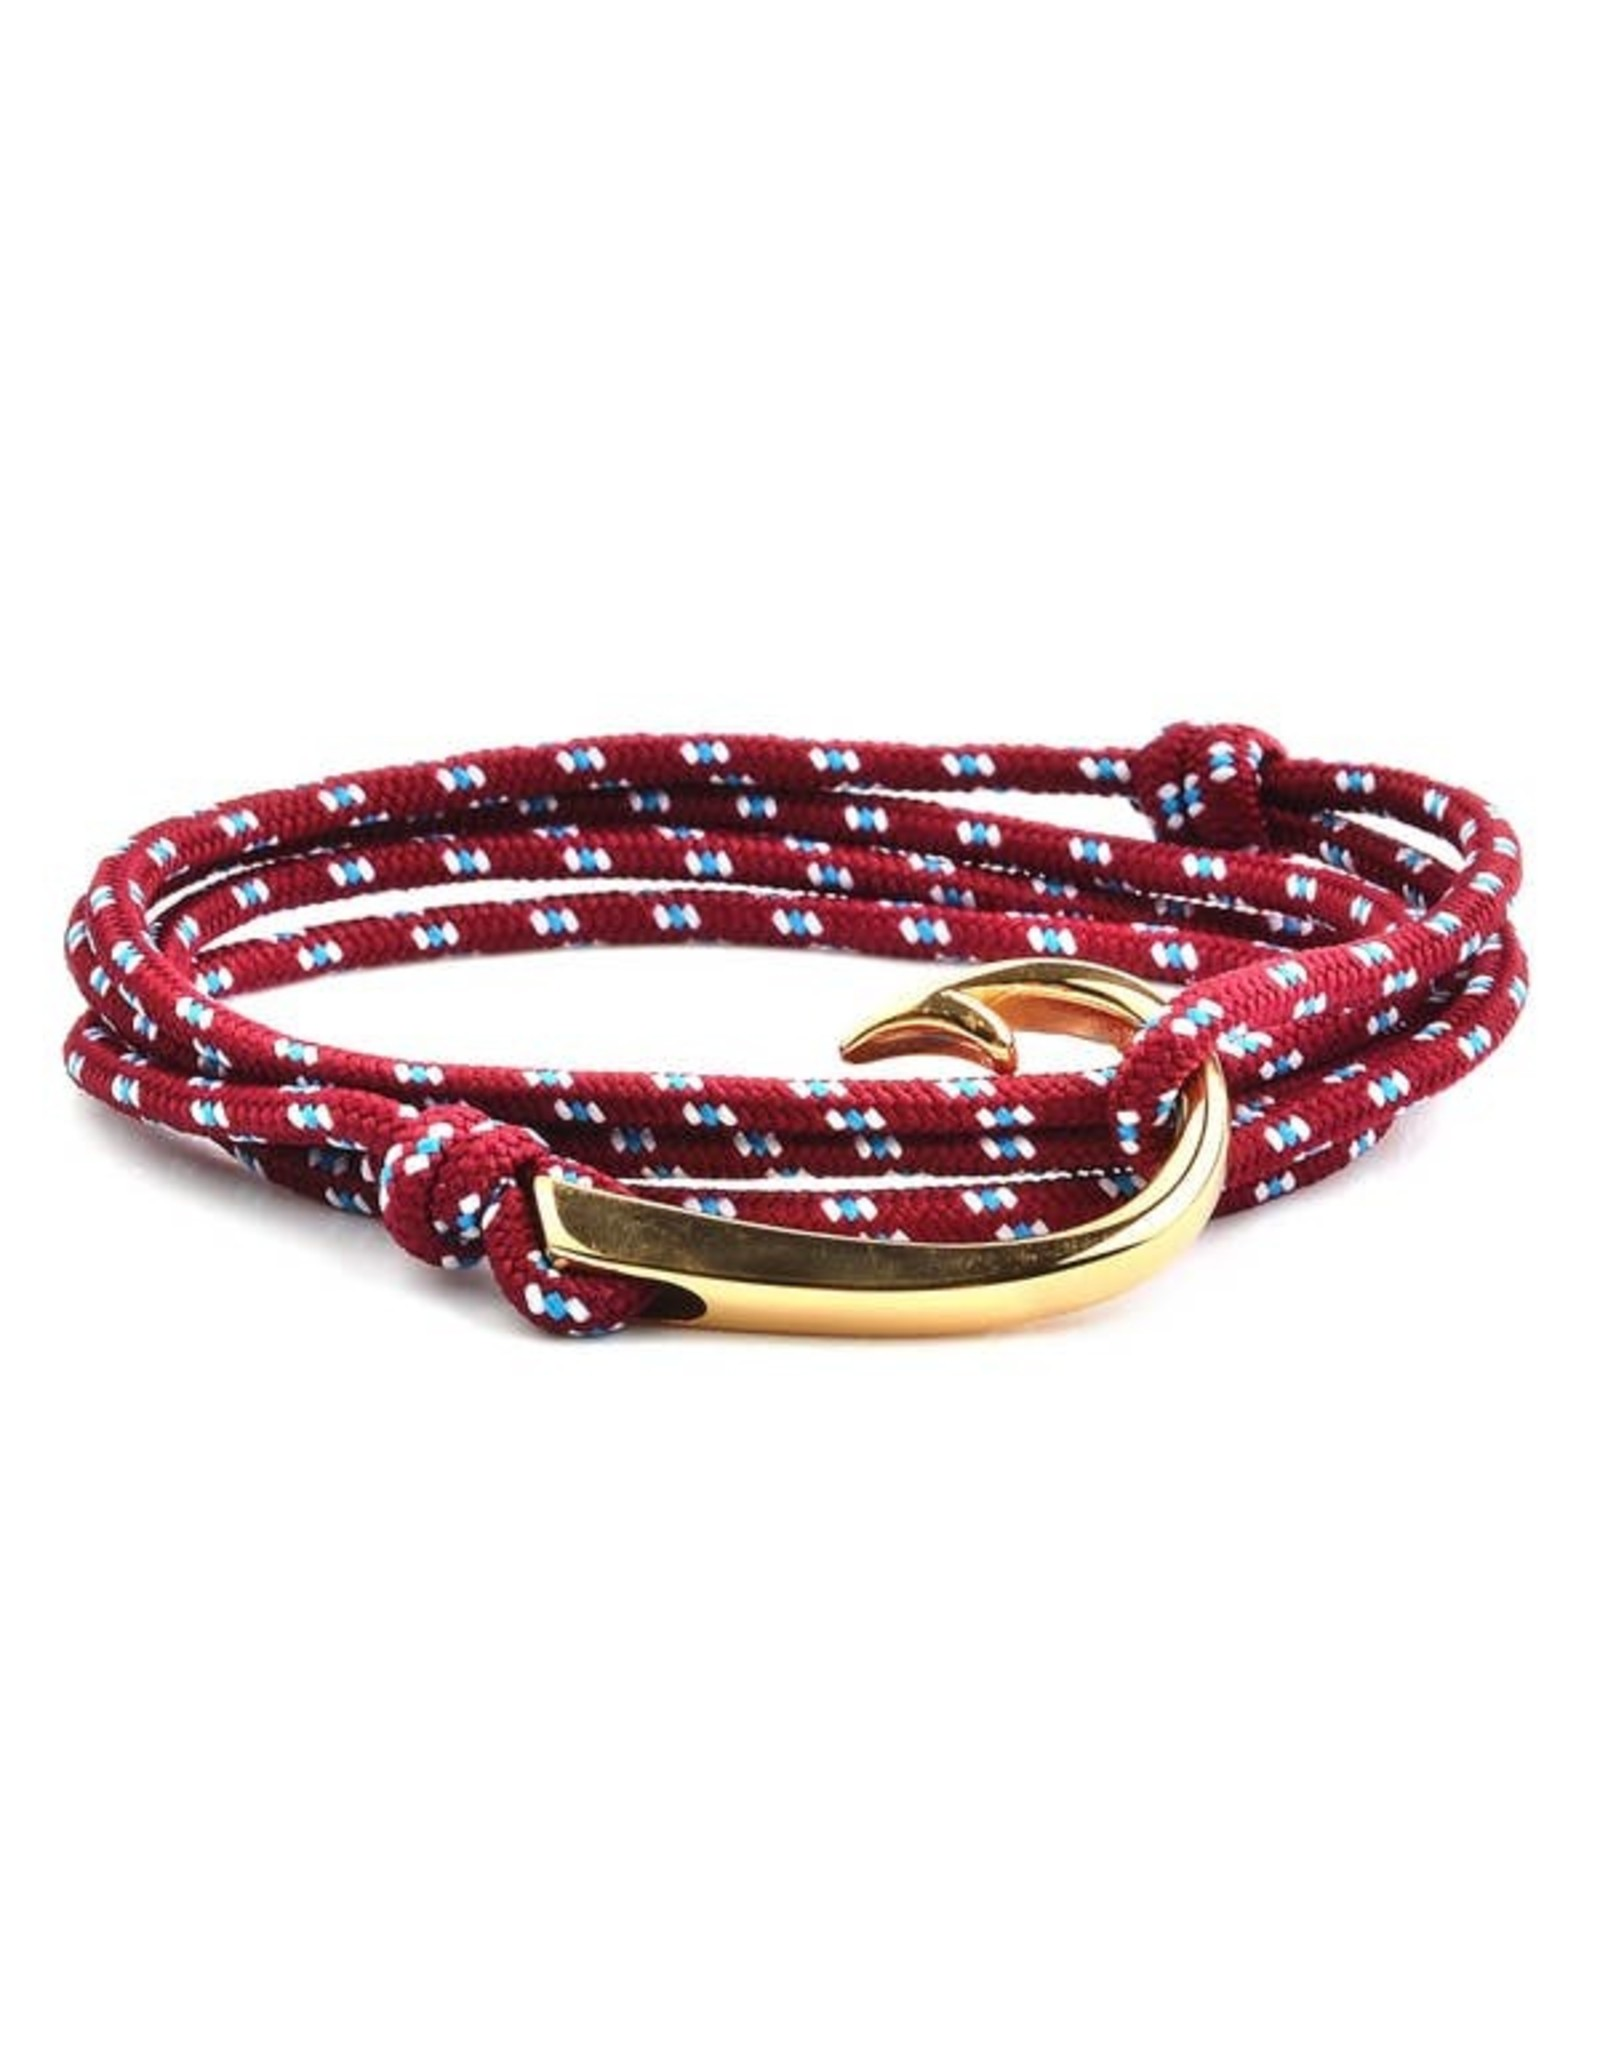 WCJ Rope and Hook Bracelet- Red